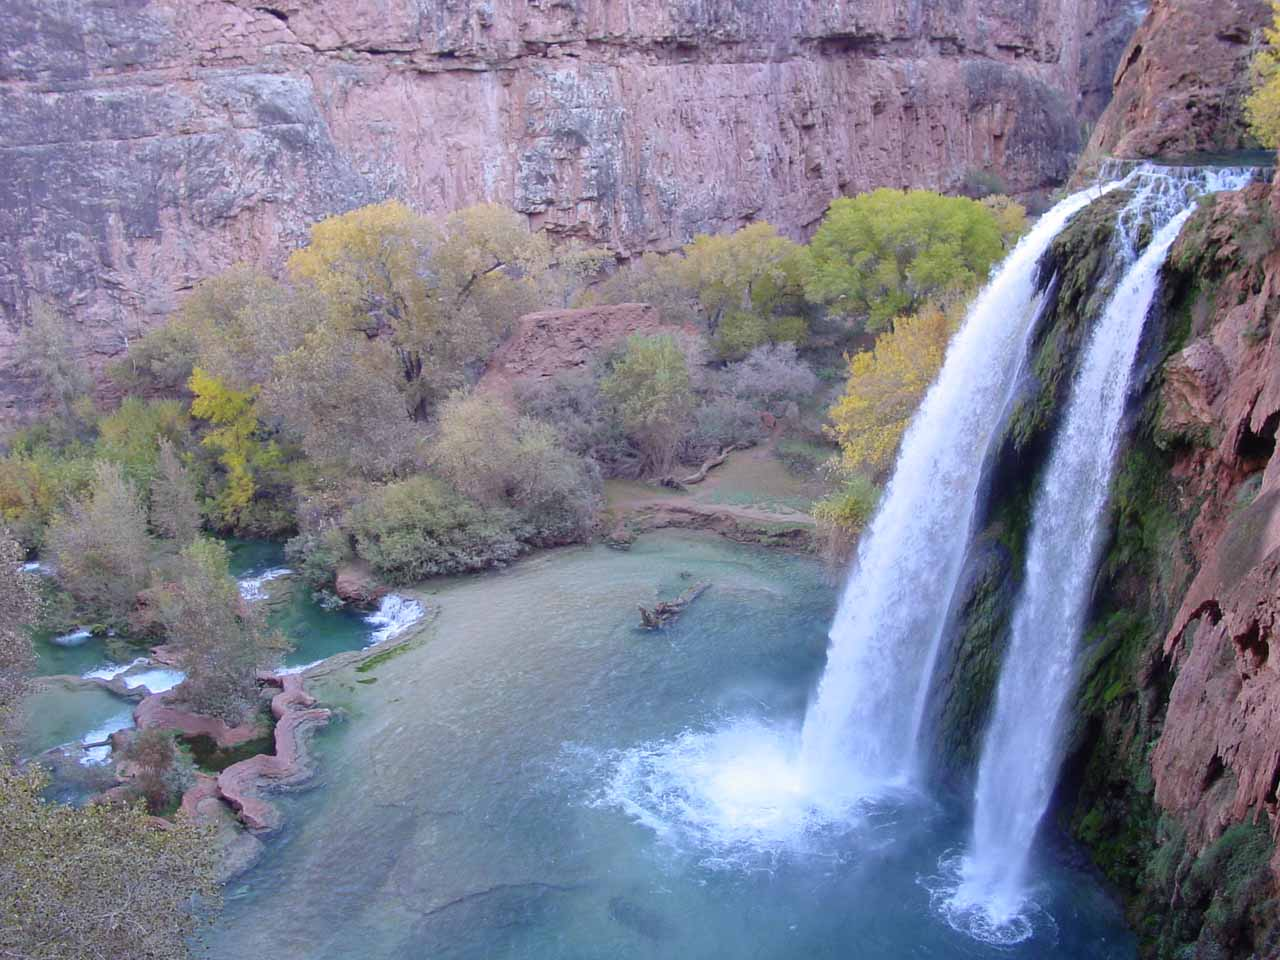 8. HAVASU FALLS [Havasupai Indian Reservation, Arizona]